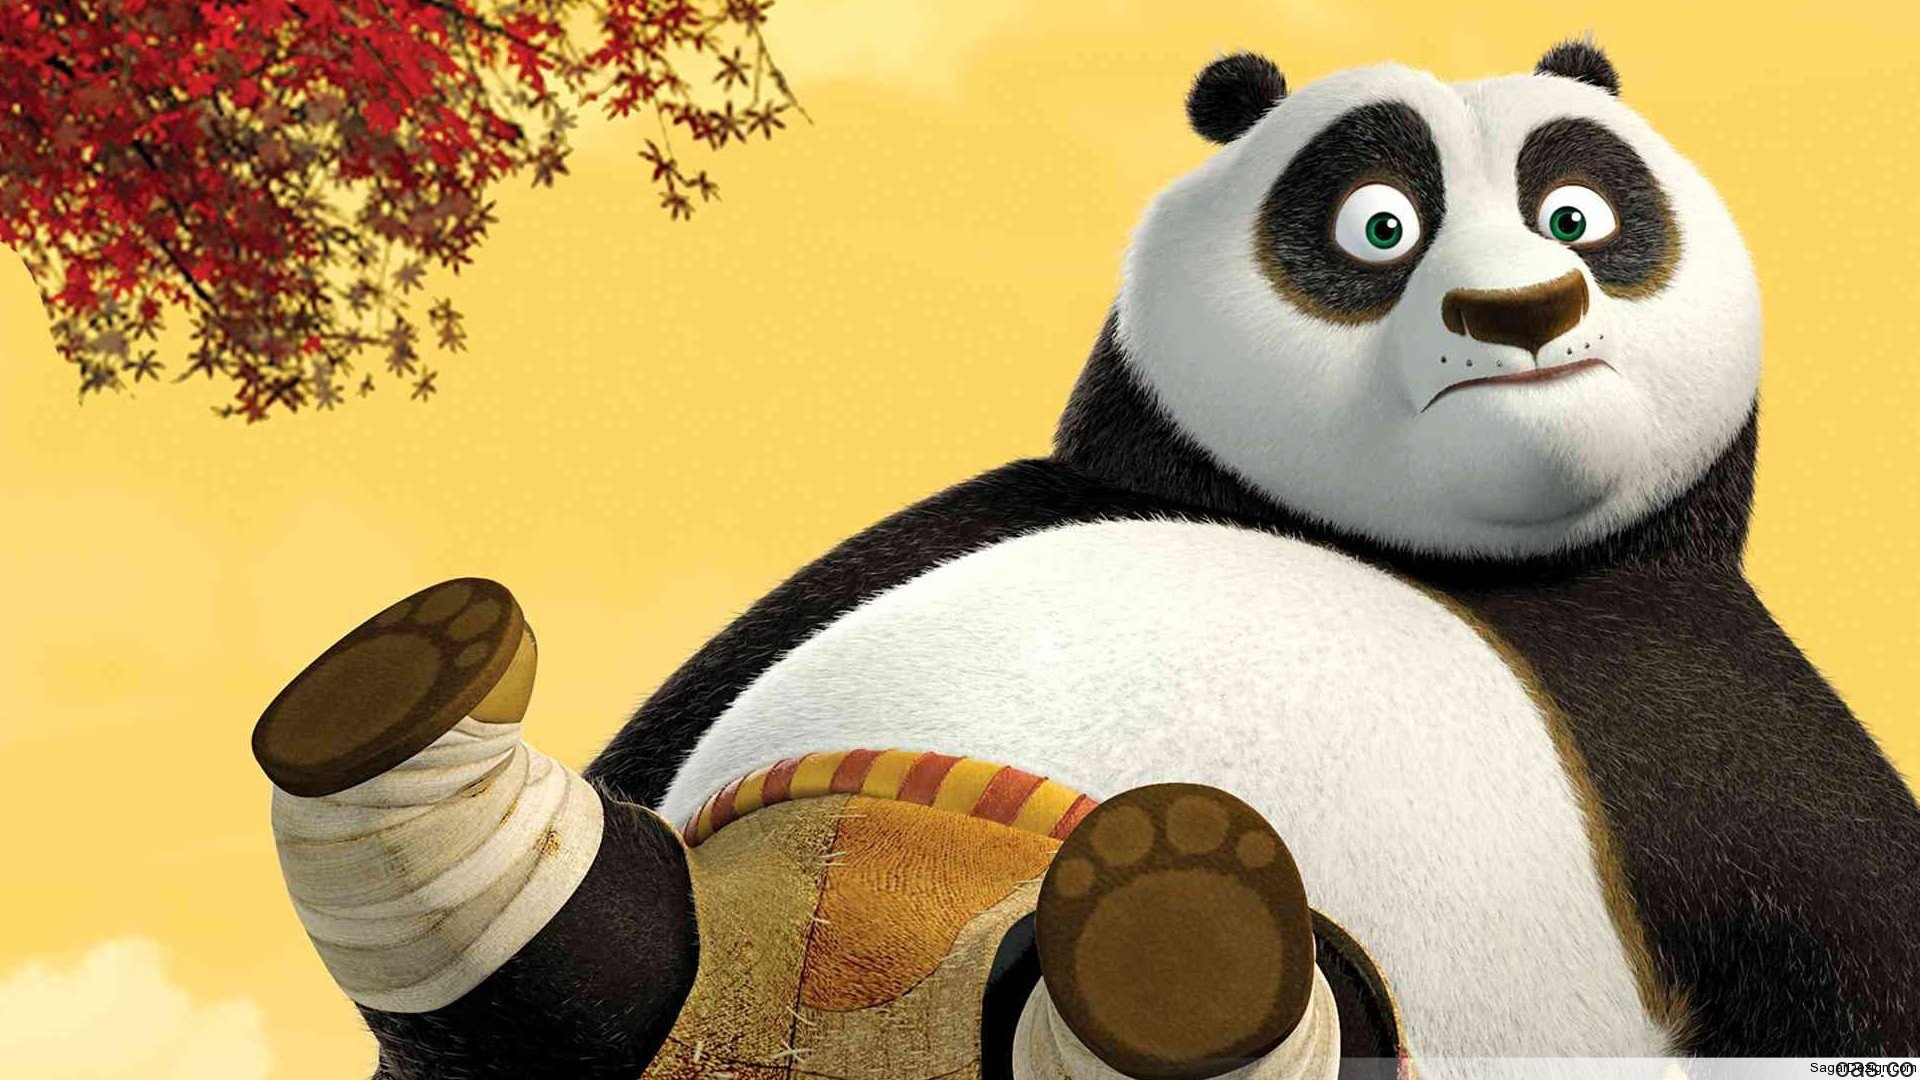 kung fu panda 3 wallpapers (82+ images)